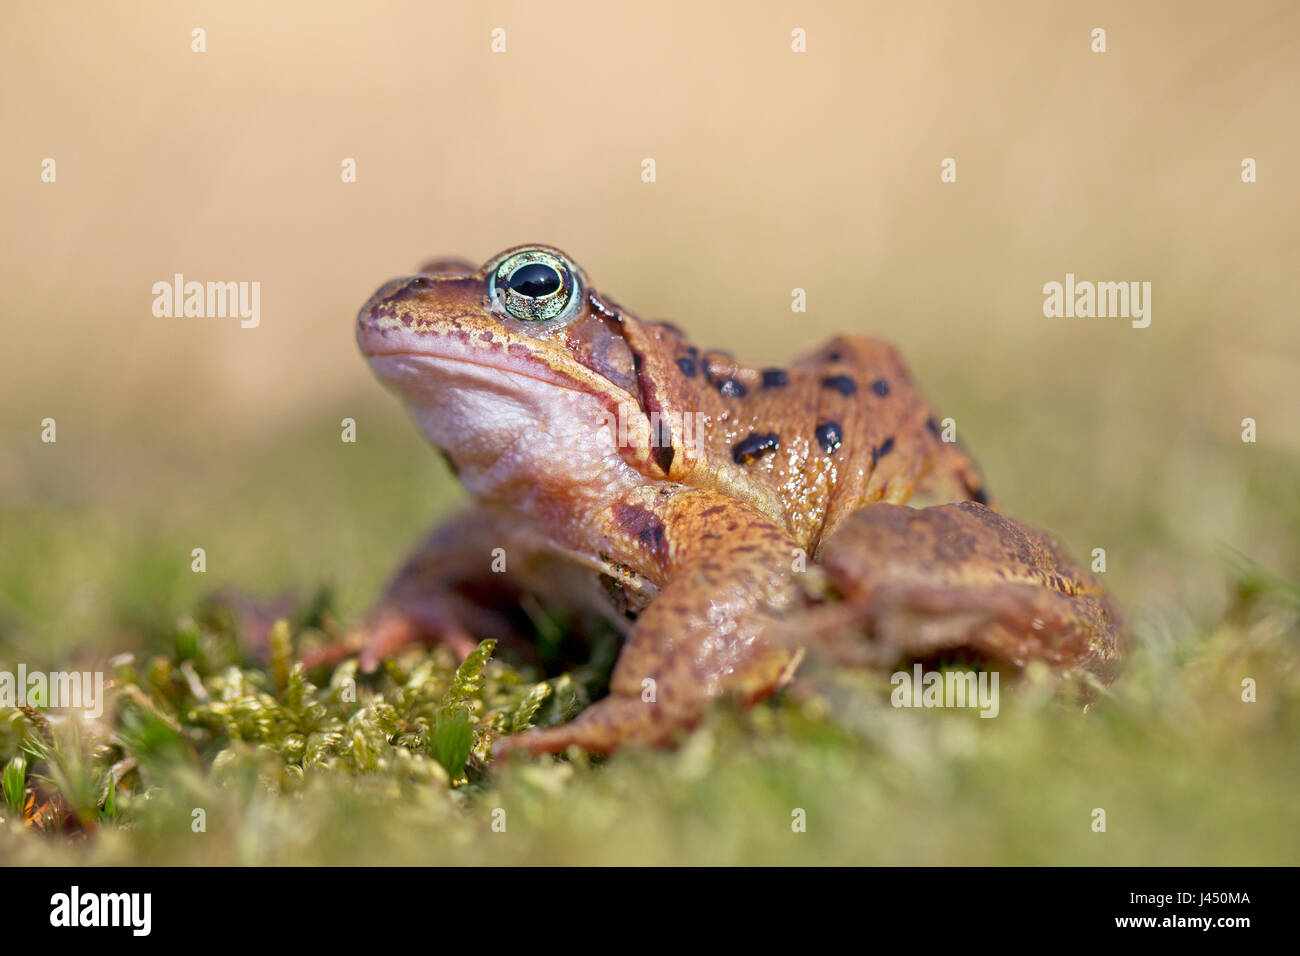 photo of a common frog - Stock Image